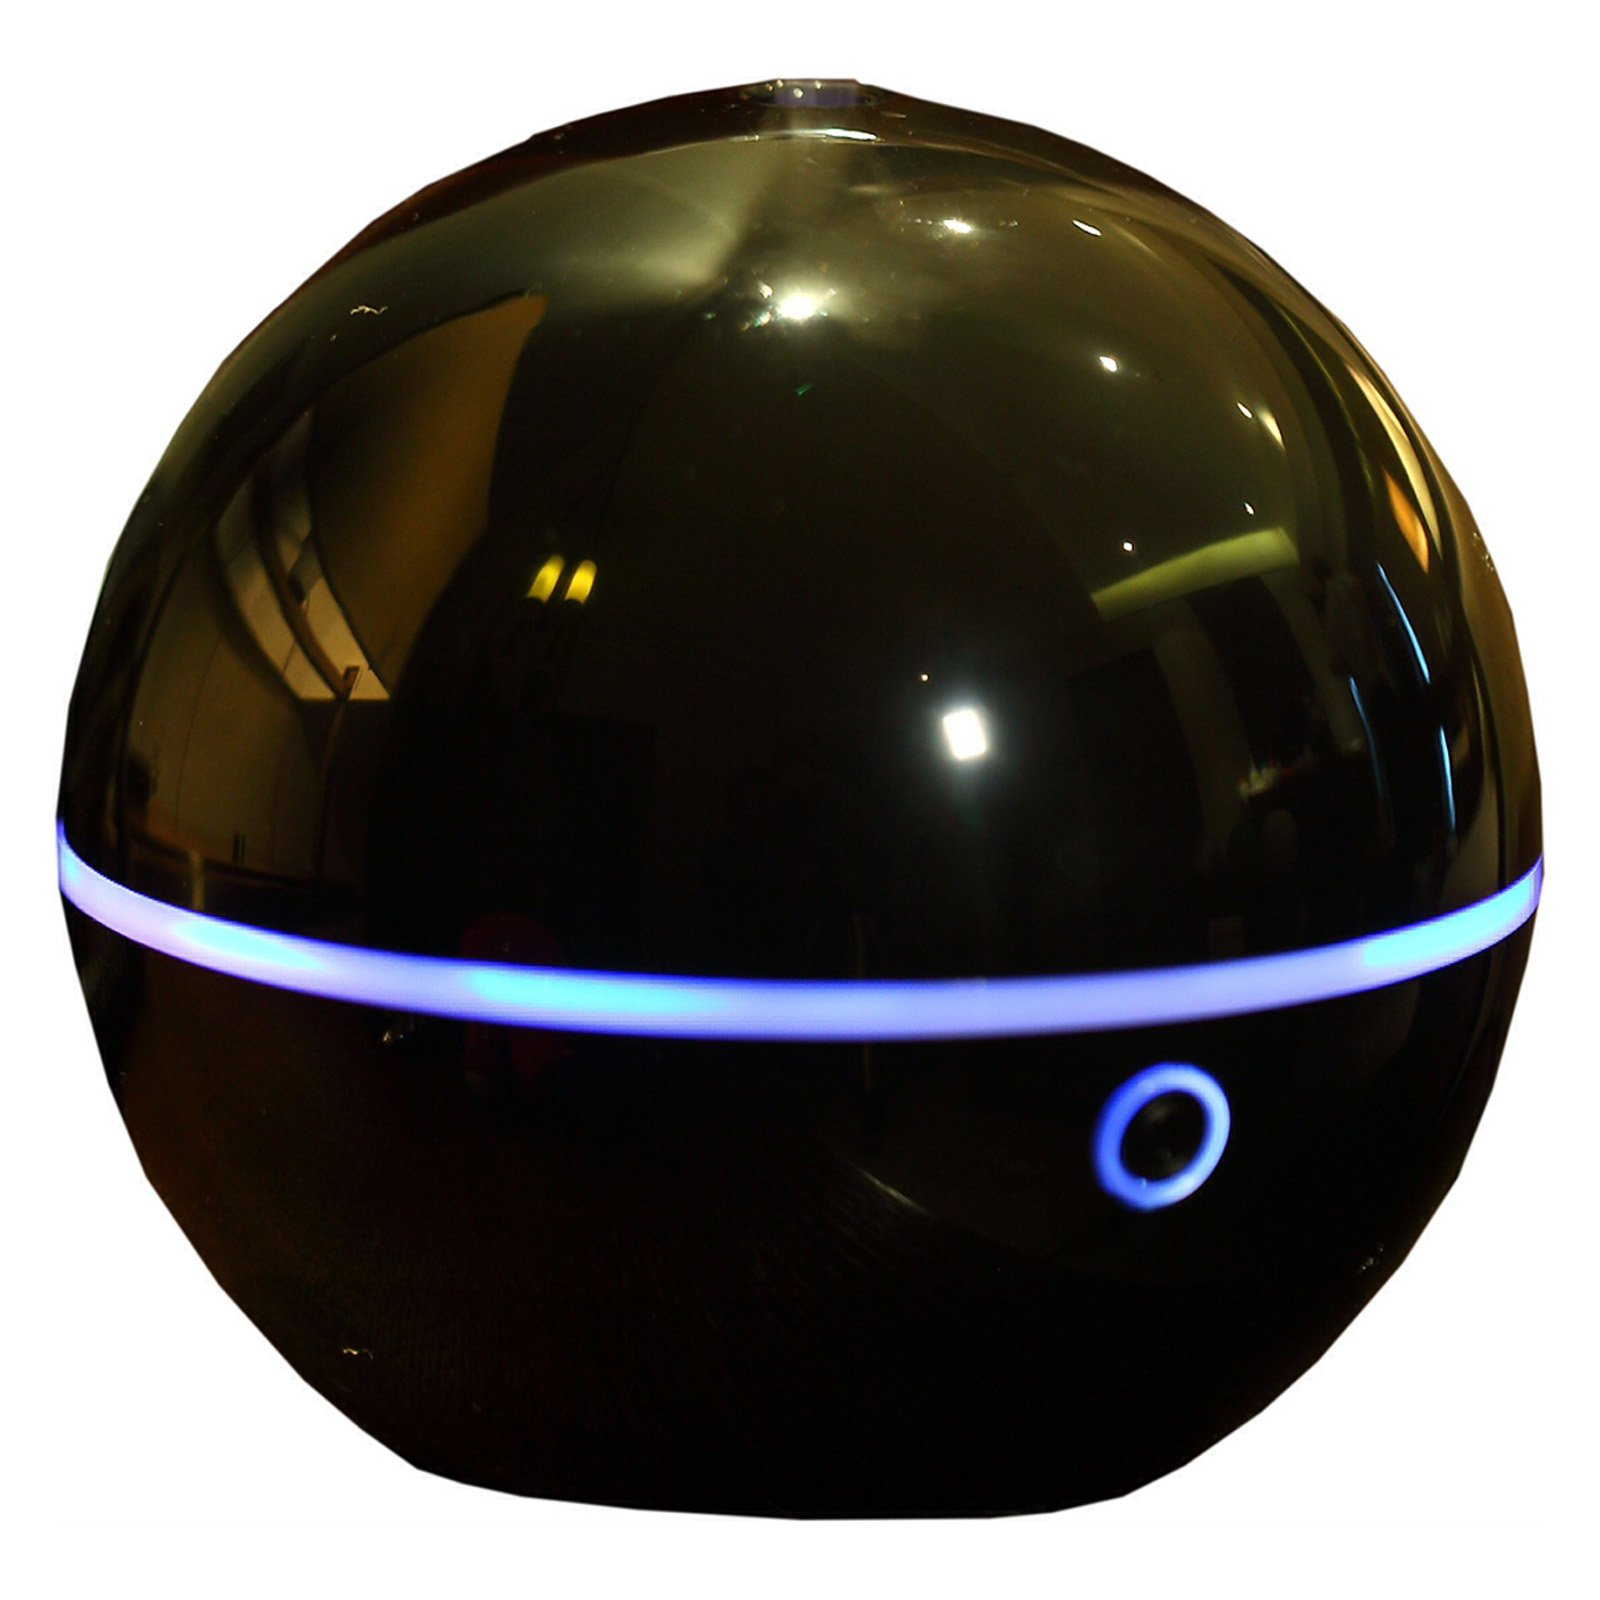 Ball Shape Ultrasonic Anion Diffuser. Home, Office, Room Decor. And Humidifier. Comes complete with a power adapter Product Size: 4.72x5.31x4.72